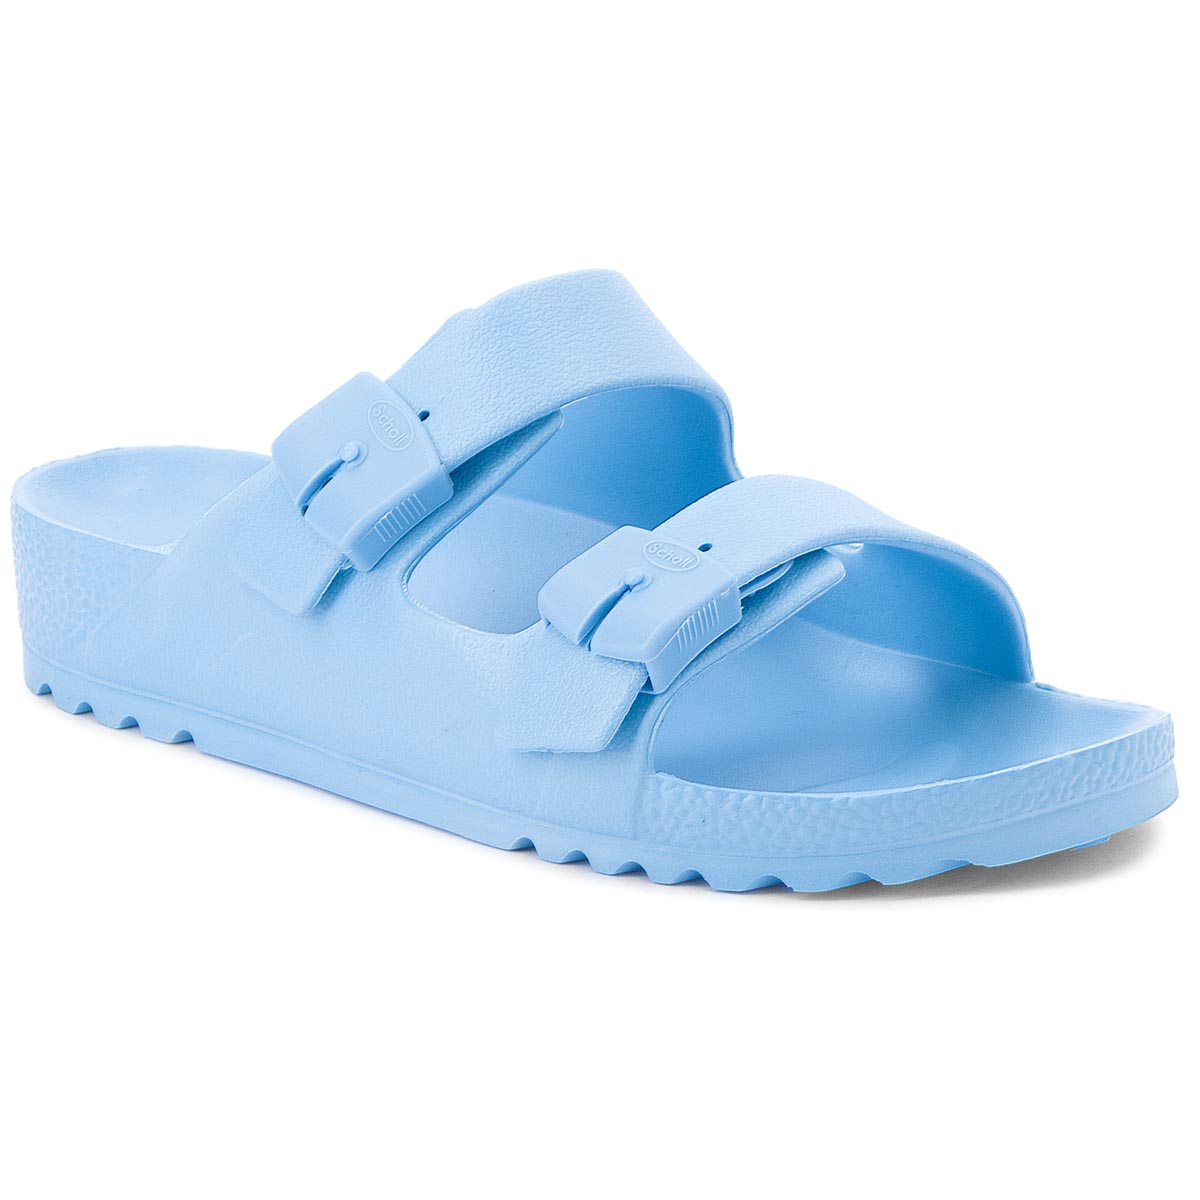 Klapki SCHOLL - Bahia F26924 1032 350 Light Blue